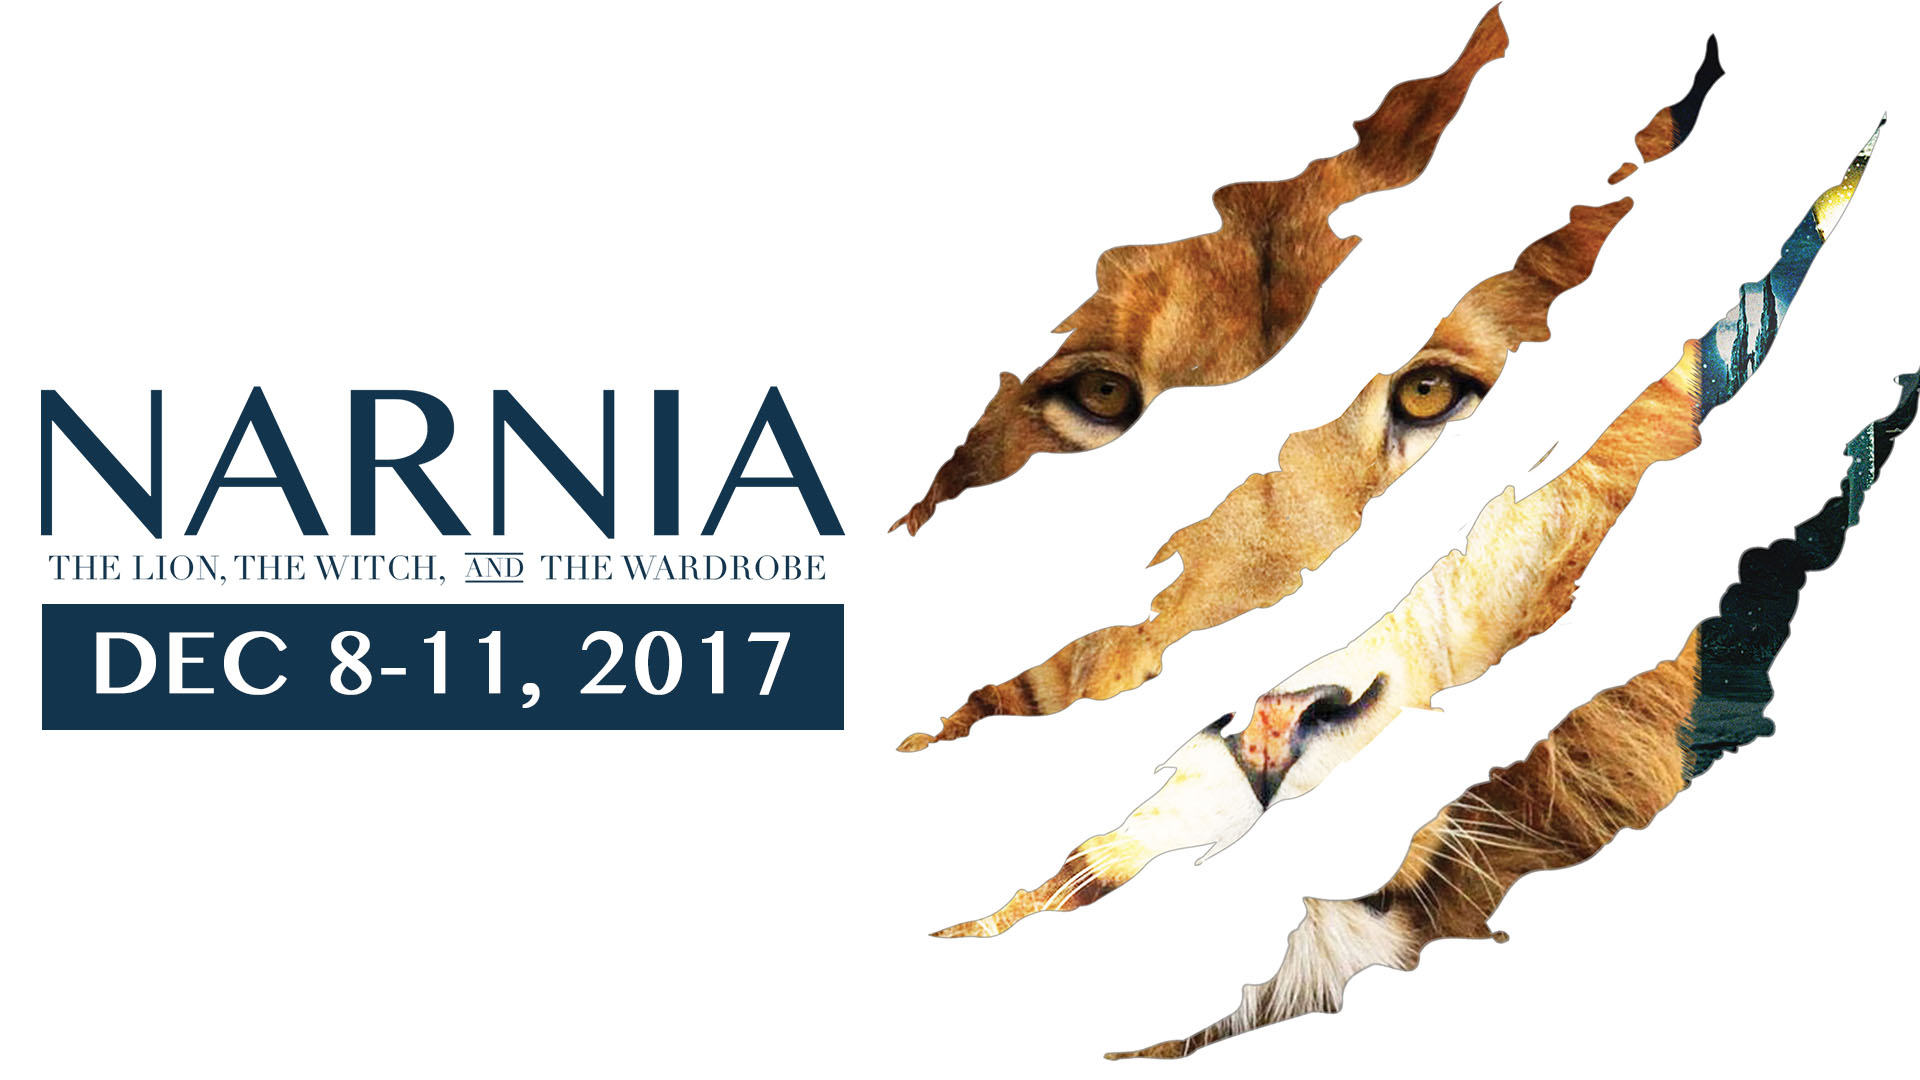 Tickets now on sale for Faith Center's Christmas Dessert Theater: Narnia: The Lion, The Witch, and The Wardrobe